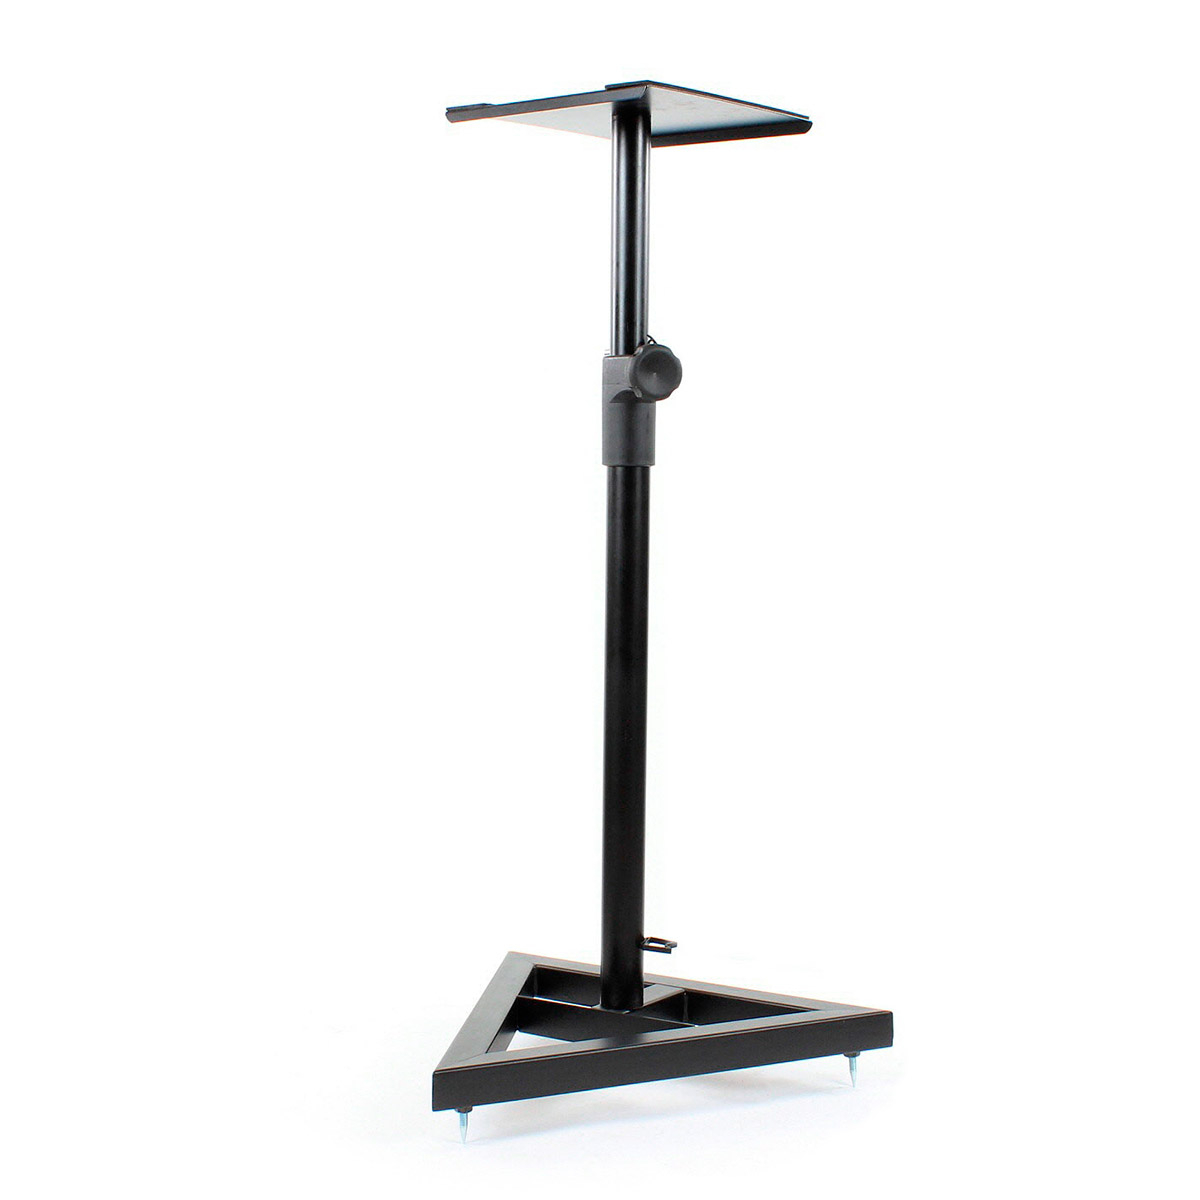 MS2 Monitor Stand